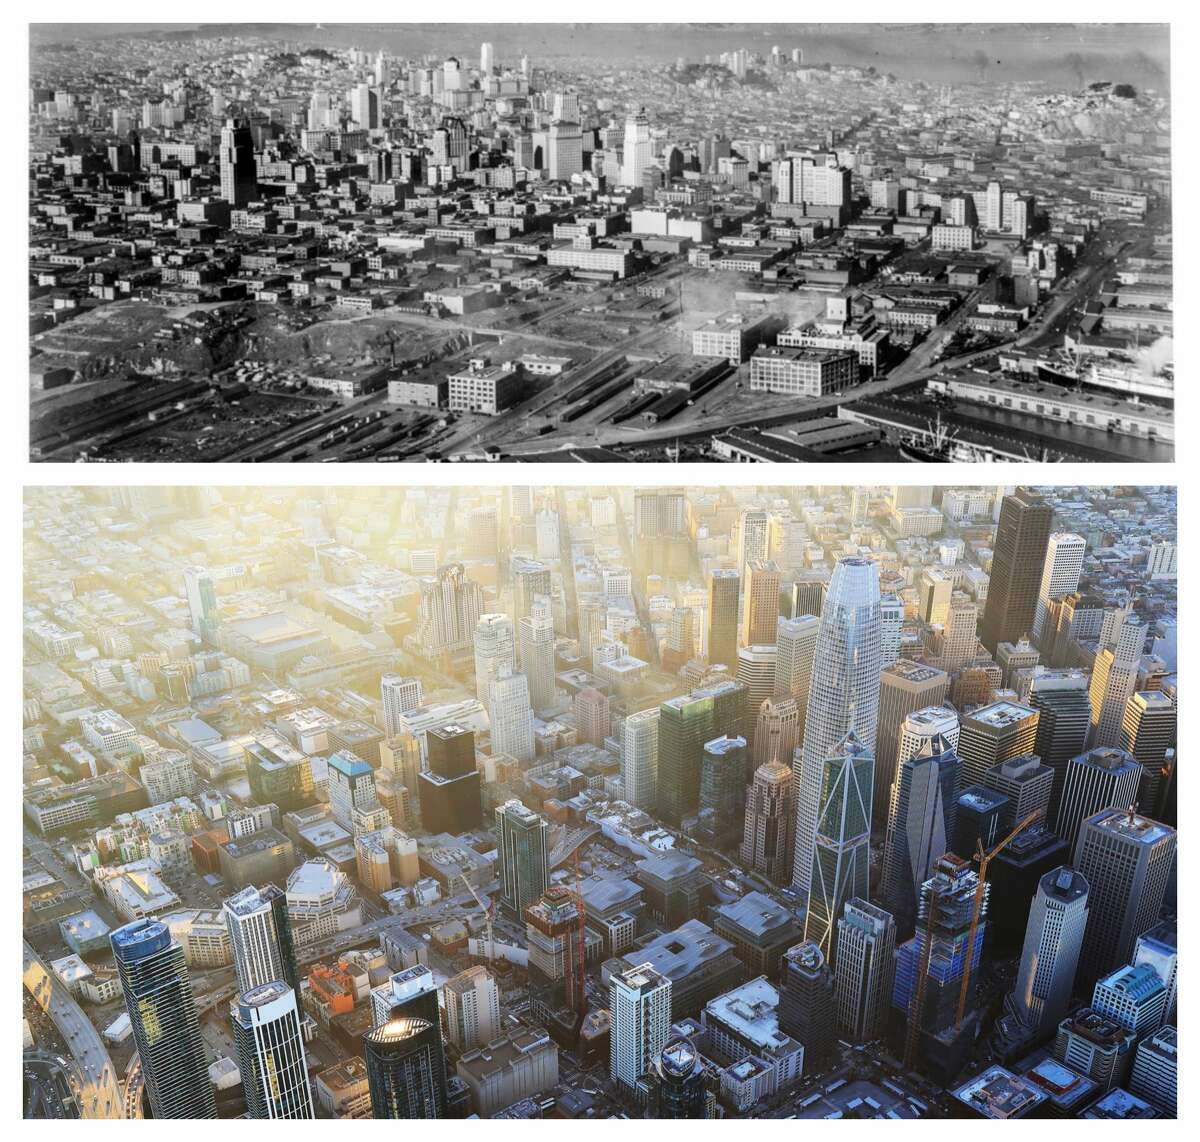 South of Market: Before and after: A neighborhood transformed Top: South of Market Aerial Feb 13, 1930 Looking Northwest over Rincon Hill to skyline, Marin Headlands [Air Corps U.S. Army] Bottom: An aerial view of the South of Market, or SoMa, district, including the Salesforce Tower, the tallest building in the right half of the photo, in San Francisco, Feb. 8, 2018. After decades of public hostility toward skyscrapers, the city has been advocating a more dense and more vertical downtown. The city now has 160 buildings taller than 240 feet and a dozen more are planned or under construction.